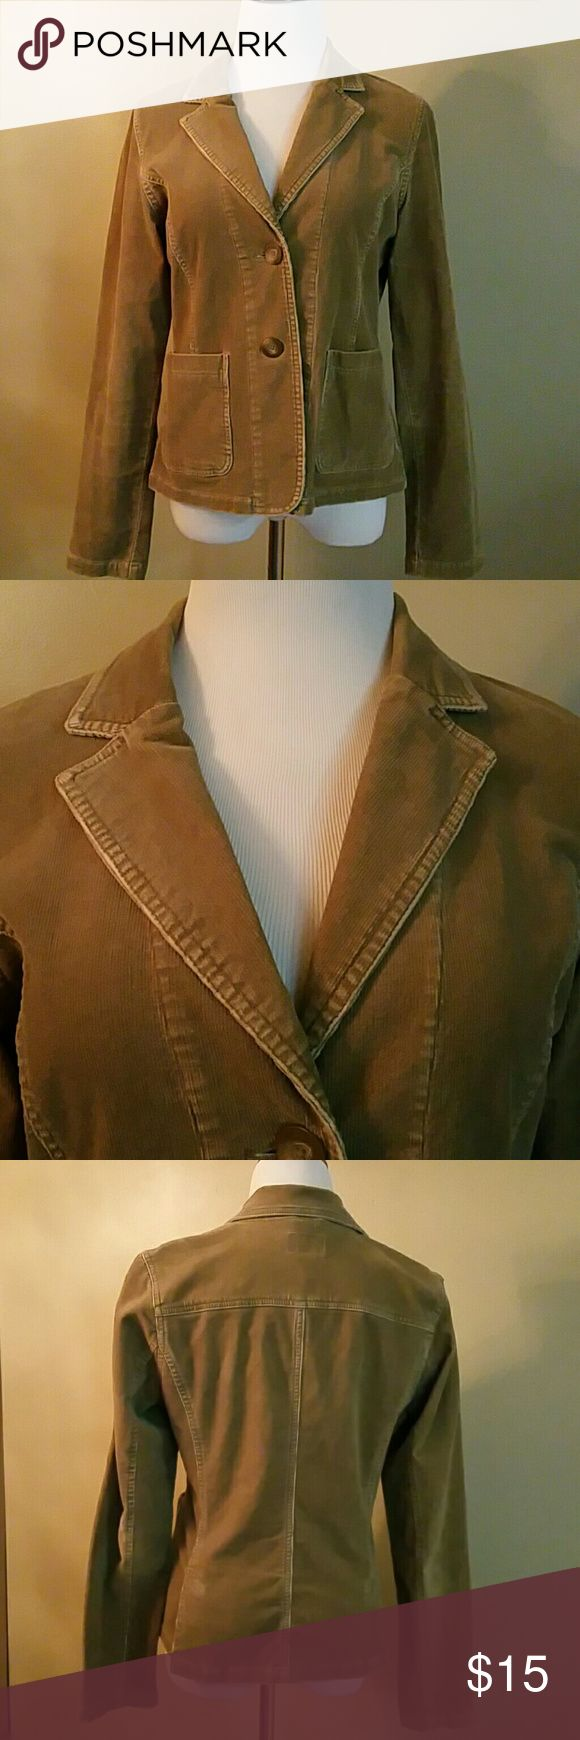 Selling this American Eagle Outfitters Blazer Size Large on Poshmark! My username is: the_baroness. #shopmycloset #poshmark #fashion #shopping #style #forsale #American Eagle Outfitters #Jackets & Blazers